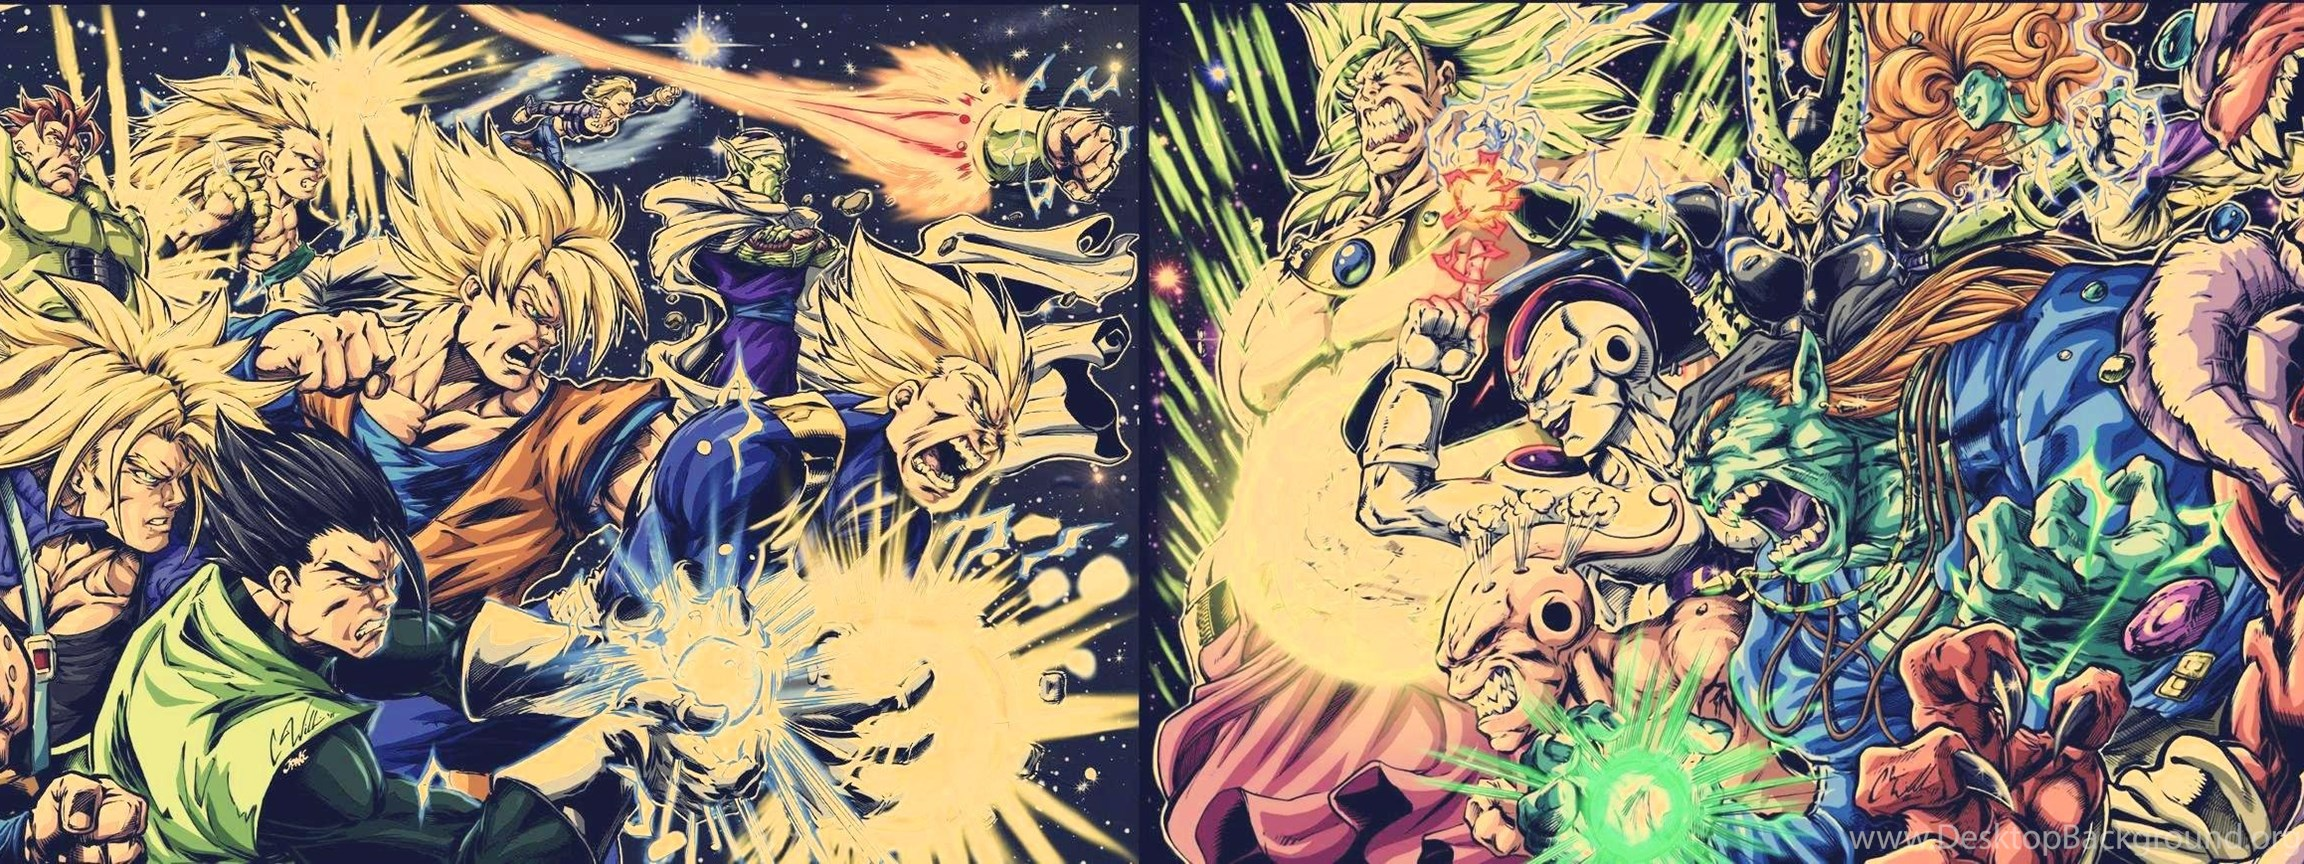 Dragon Ball Z Wallpapers Hd Free Backgrounds For Desktop Mobile